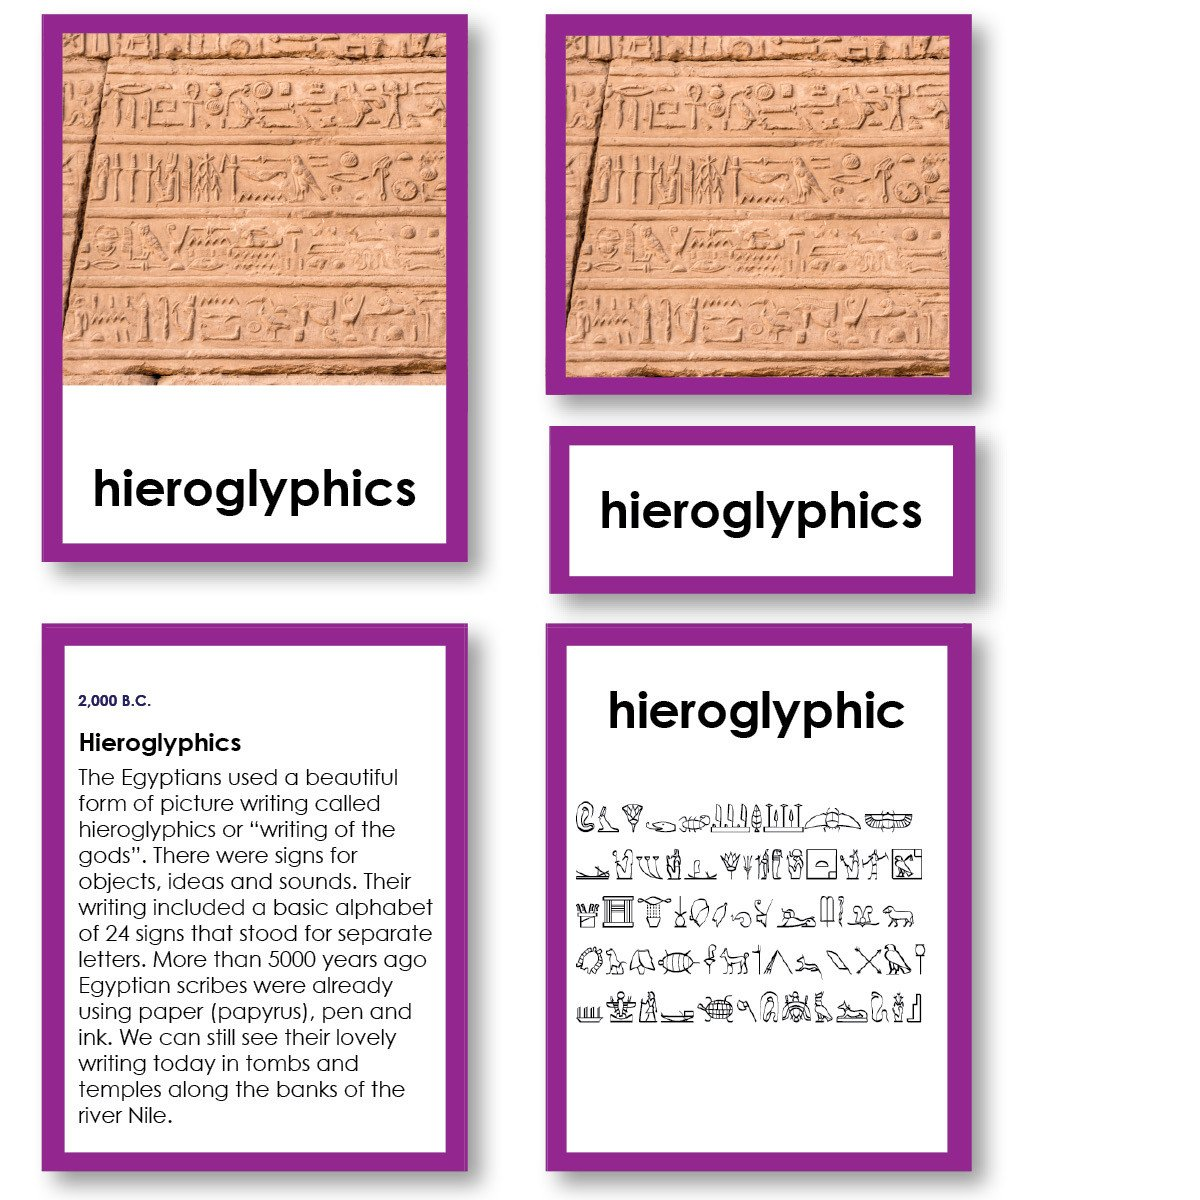 History Material-World History - History Of Writing 3-Part Cards With Descriptions